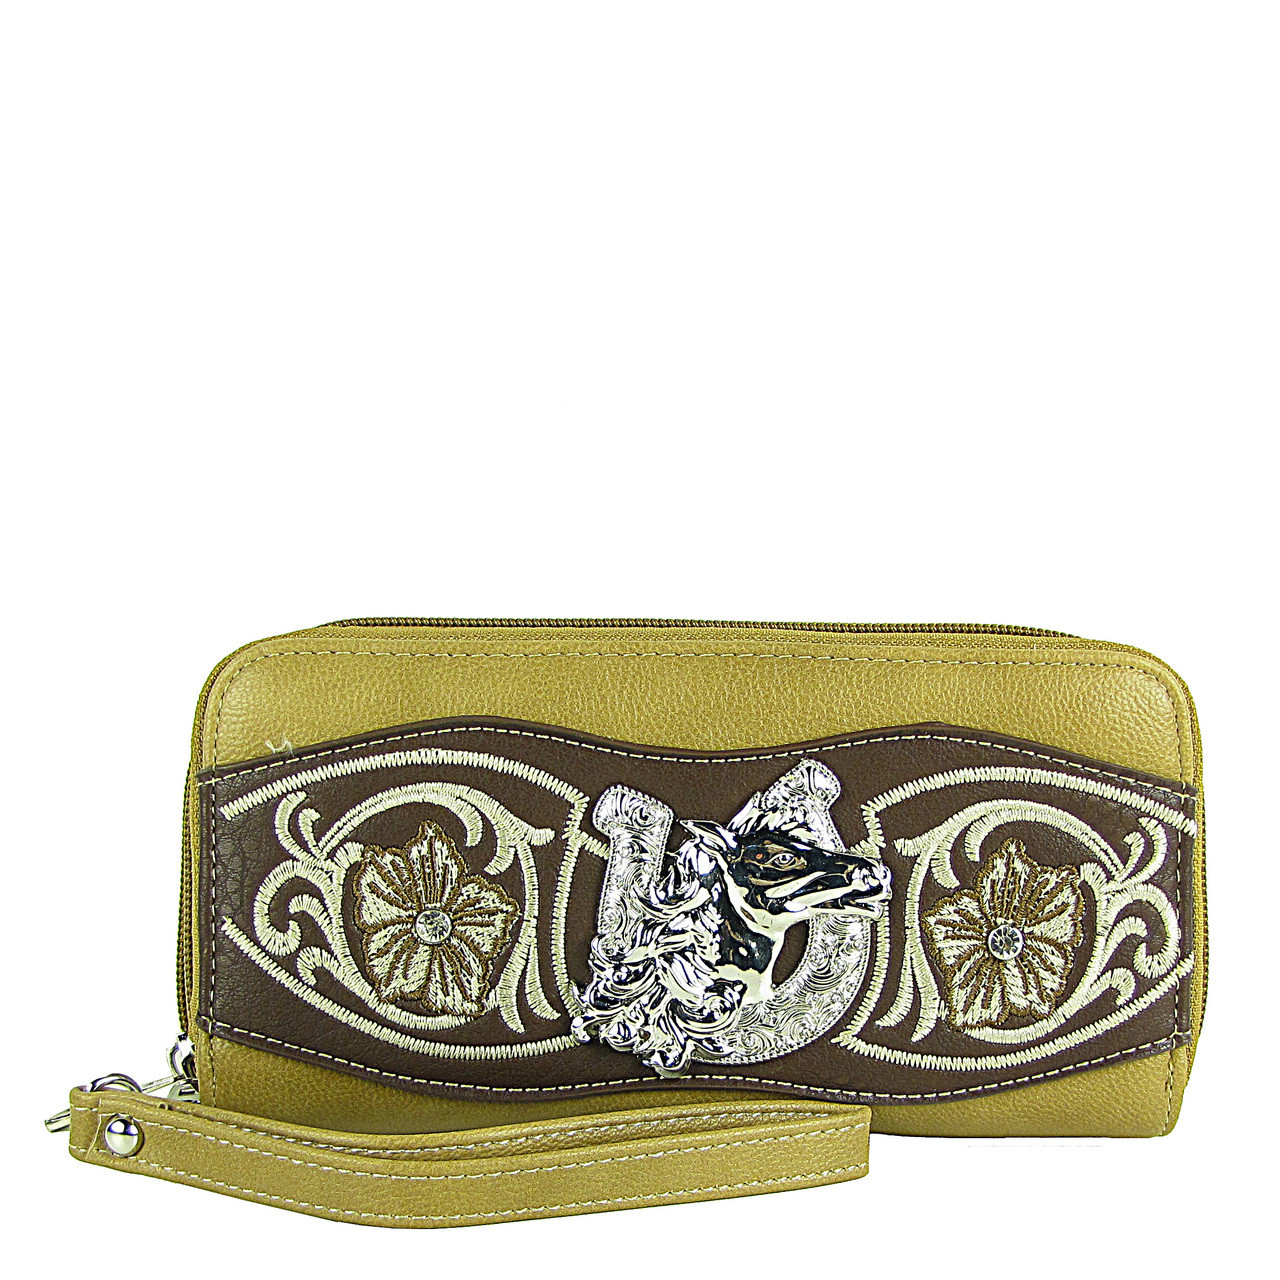 TAN HORSESHOE WITH FLOWER LOOK ***(DOUBLE ZIPPER)*** WALLET CB3-1205TAN